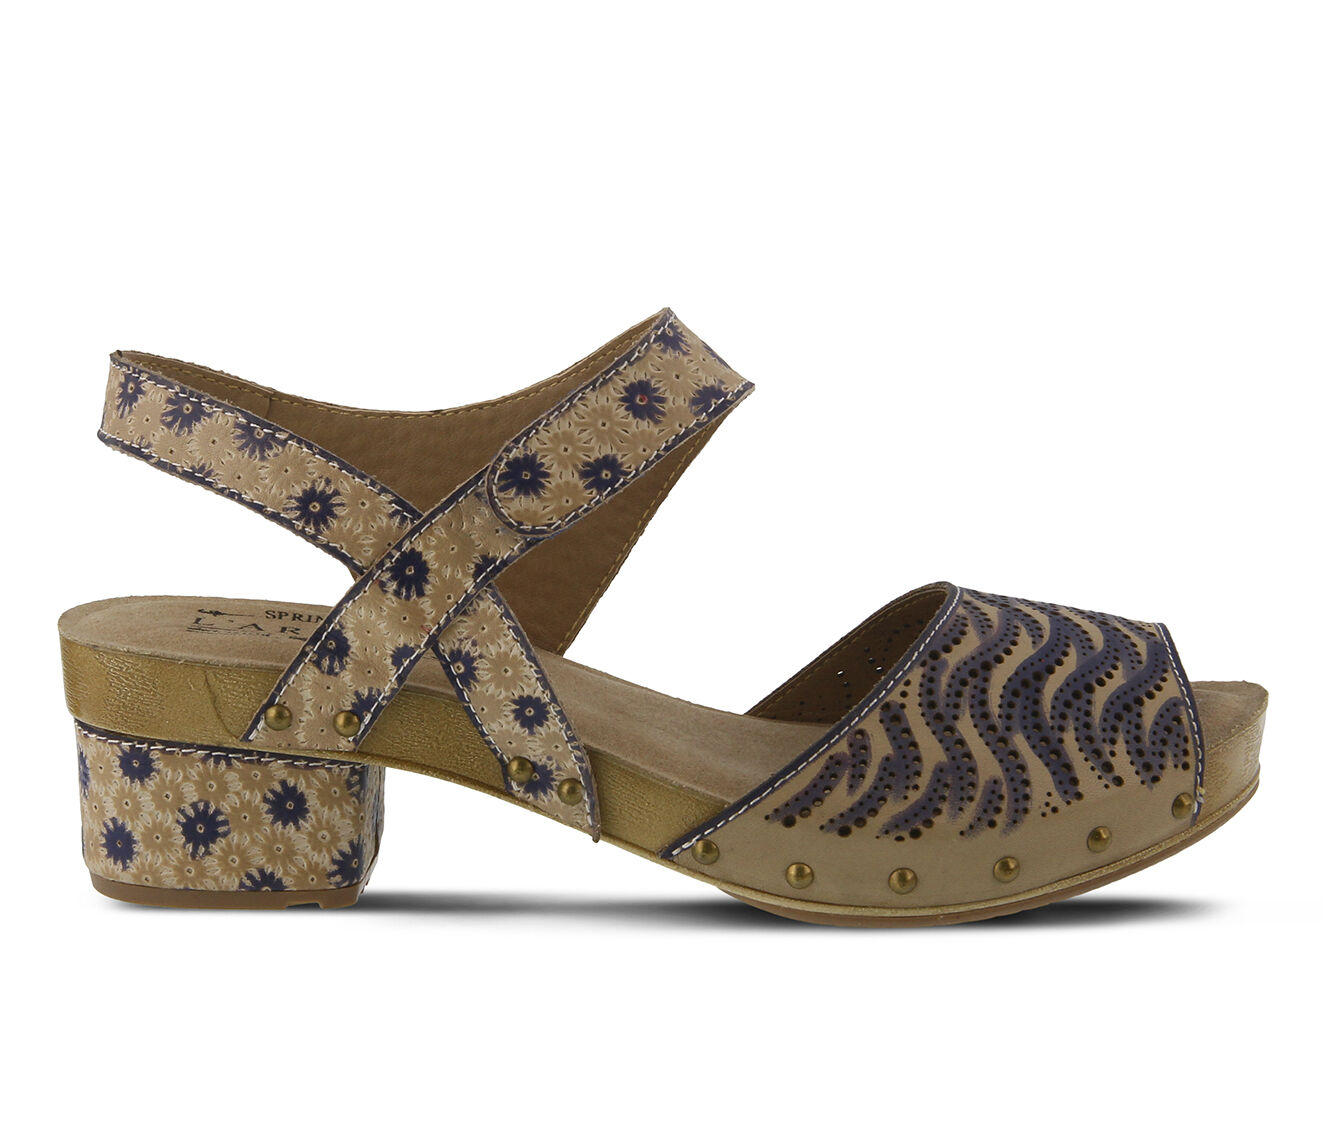 Women's L'ARTISTE Gloga Sandals Beige Multi